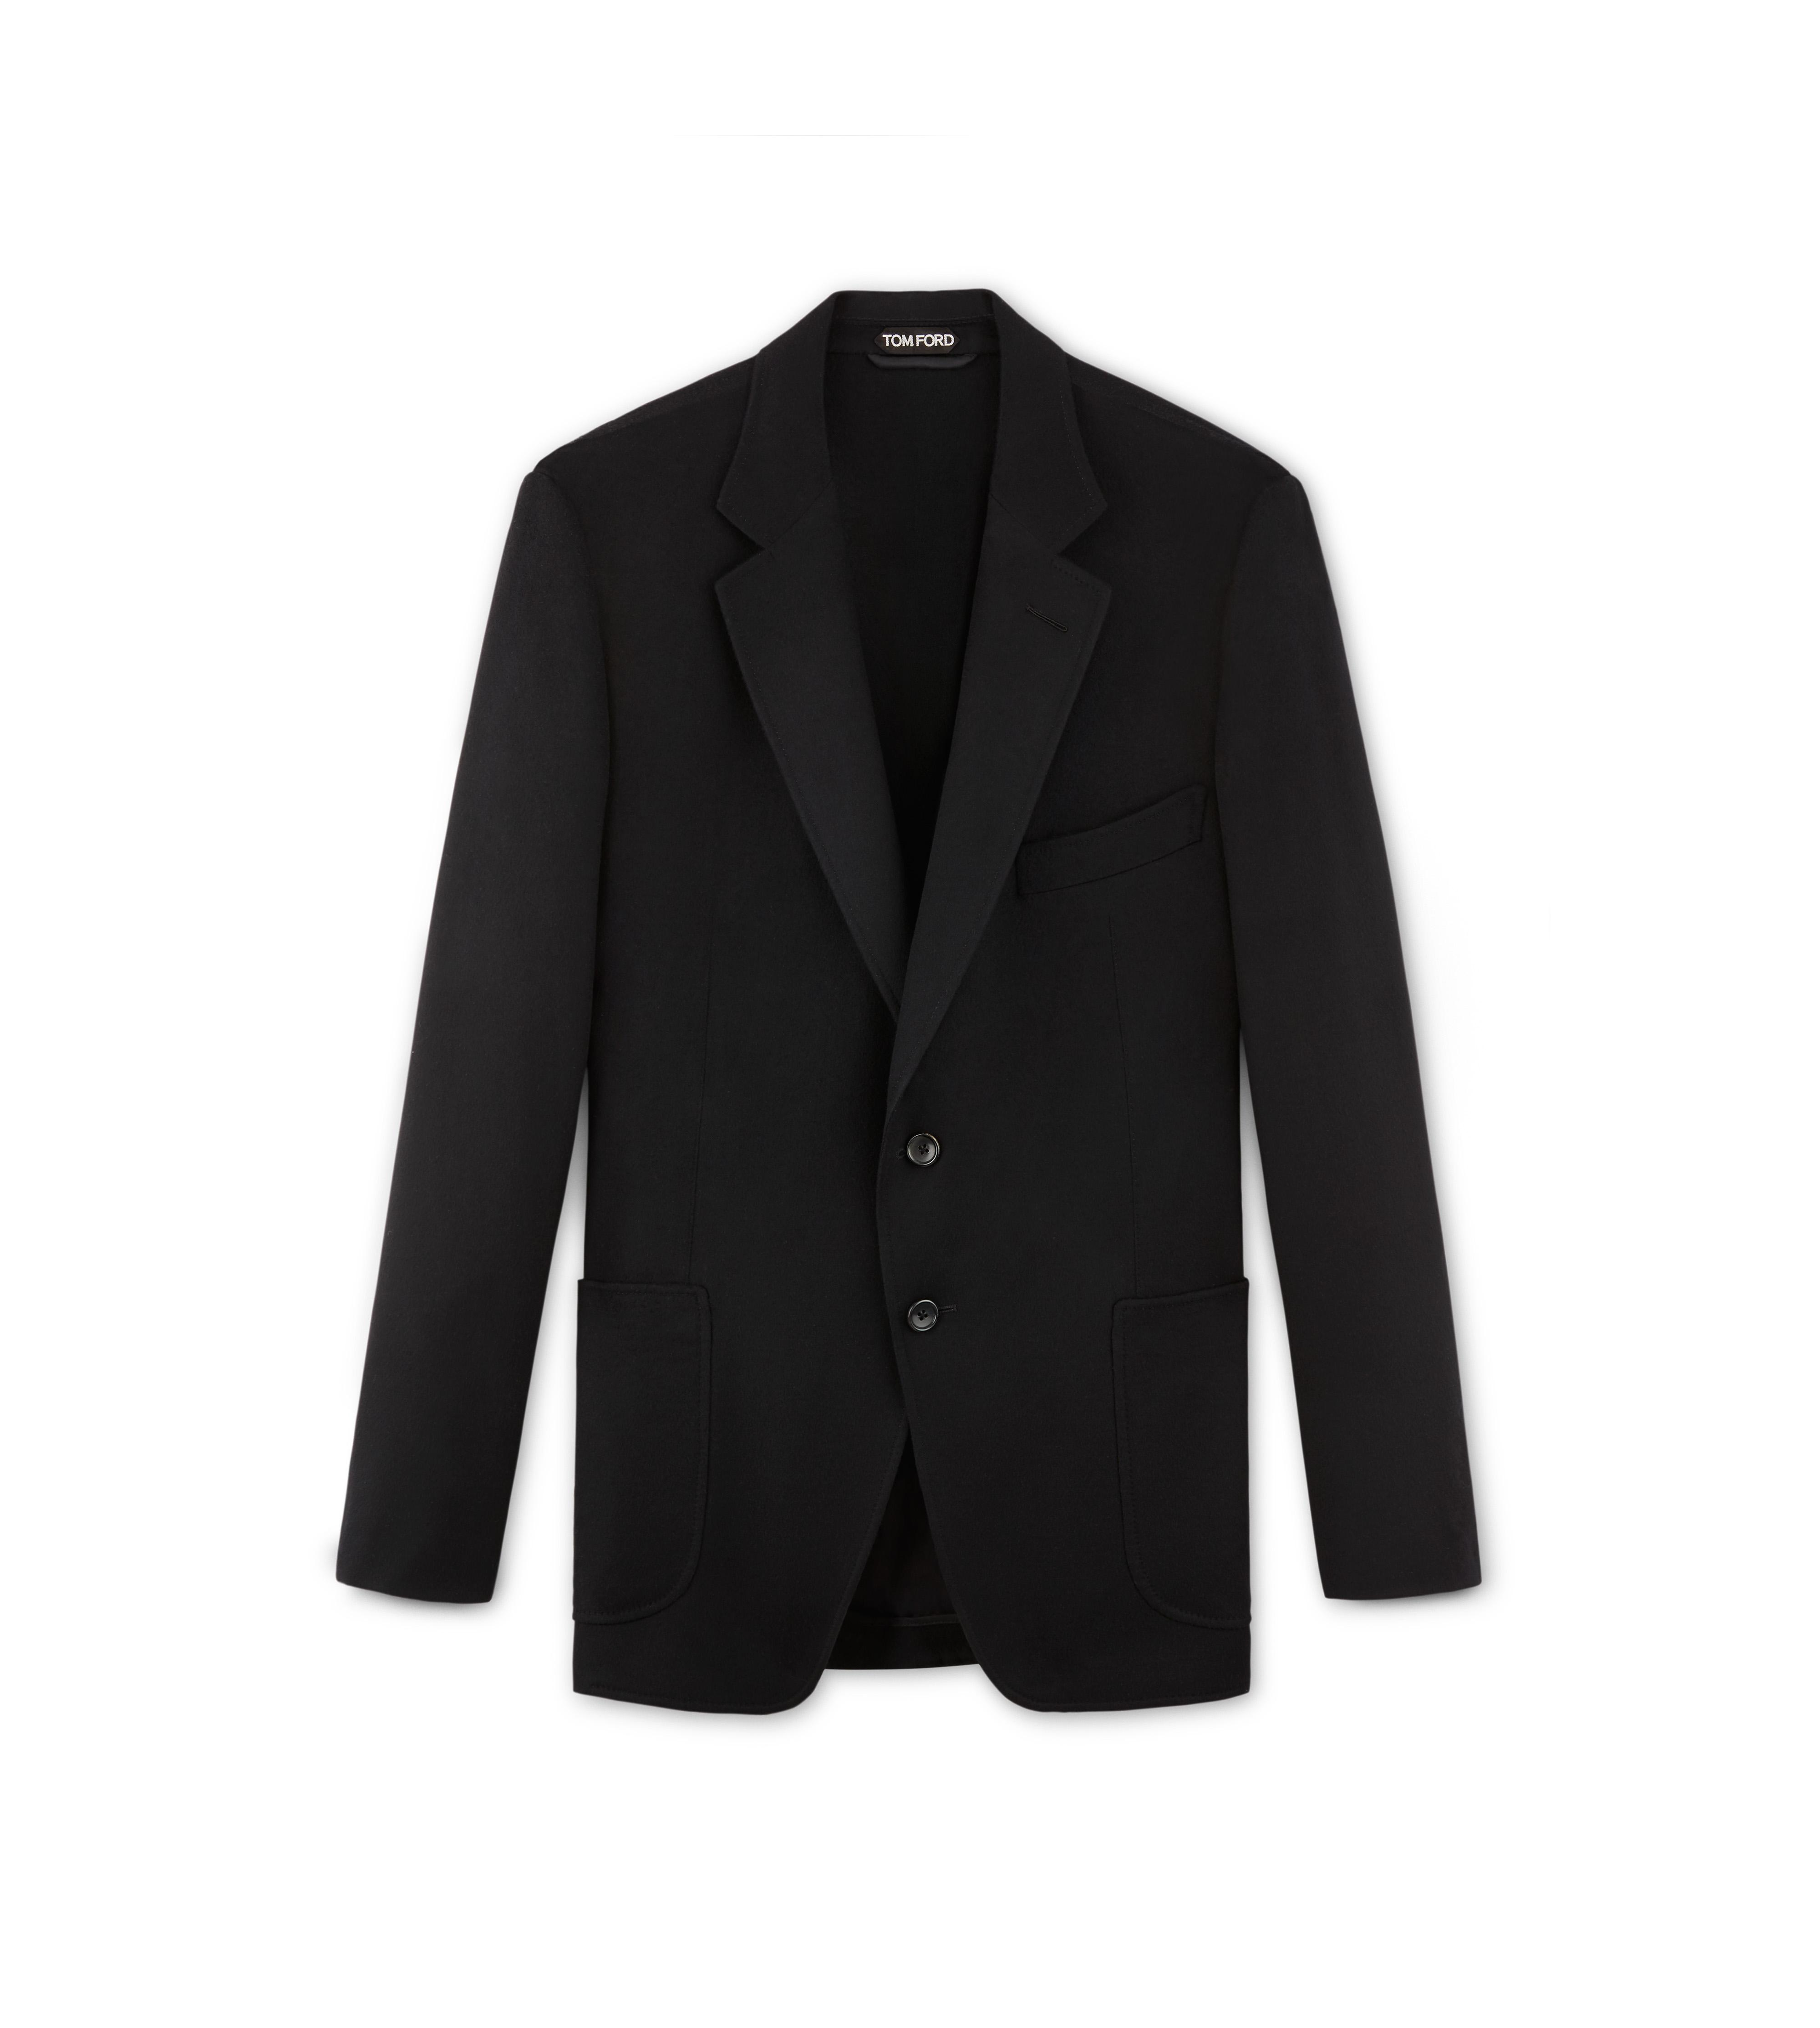 BLACK BRUSHED CASHMERE O'CONNOR SPORT JACKET A thumbnail